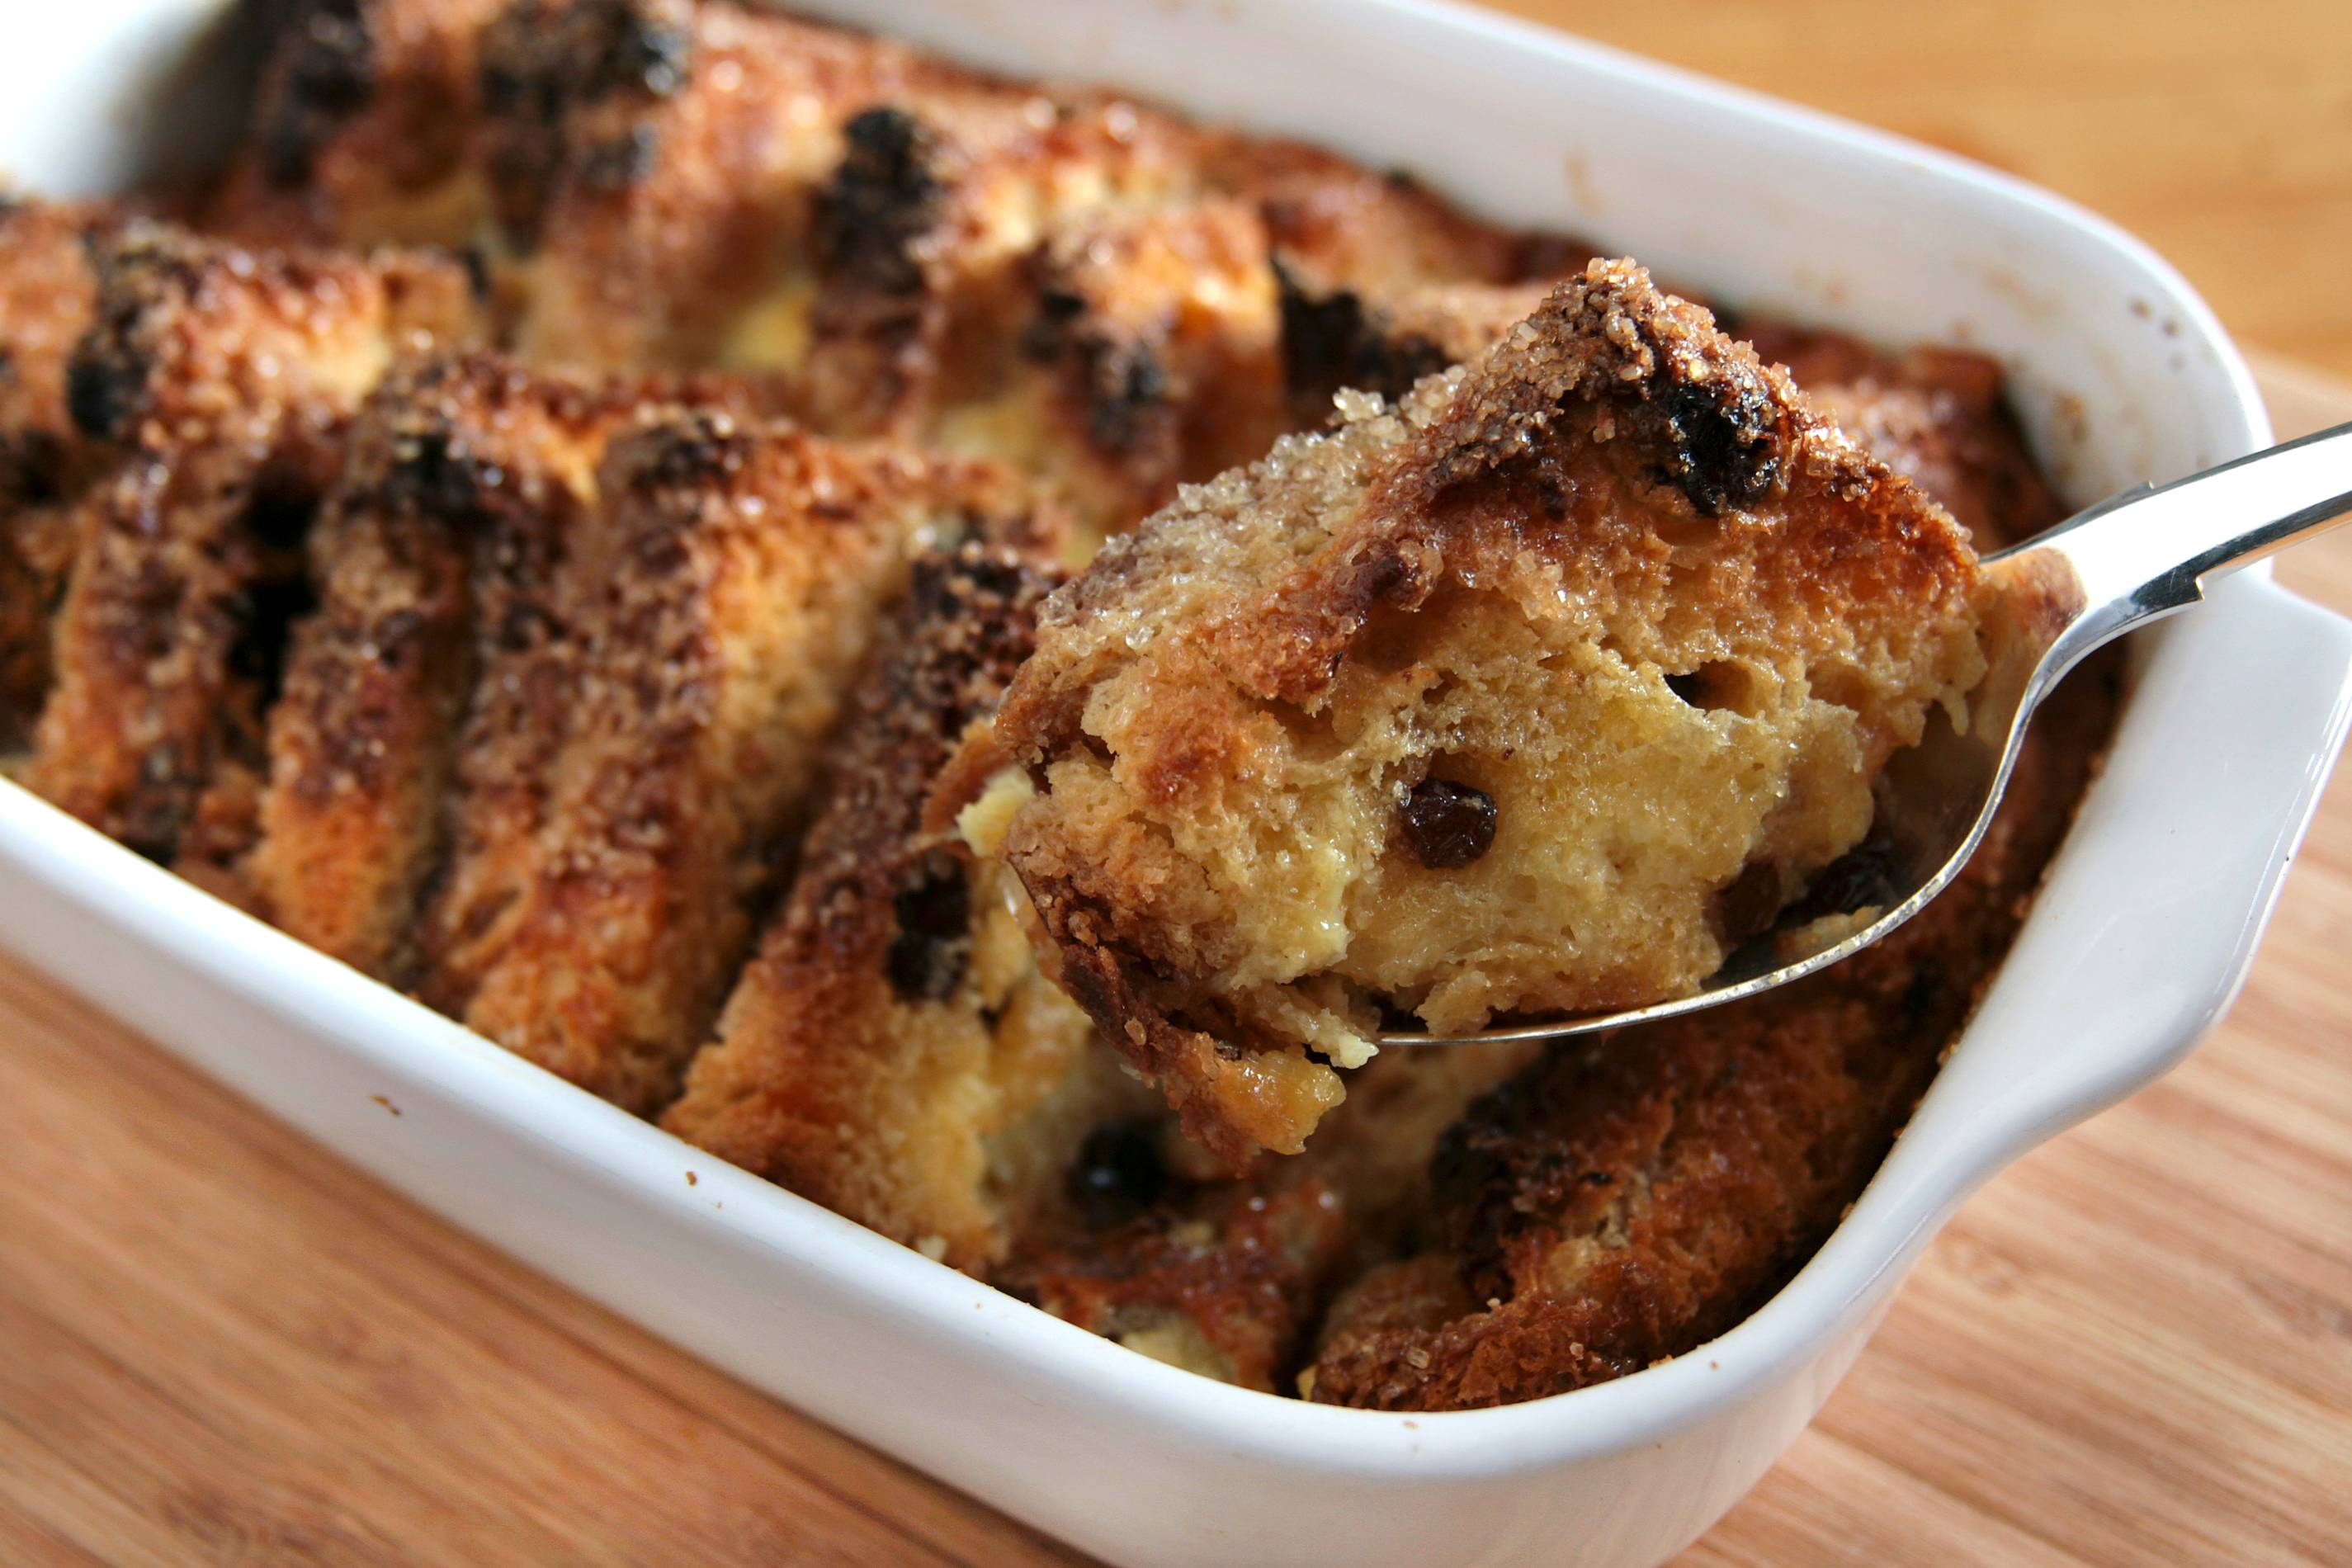 Irish Soda Bread French Toast by Andrea Correale